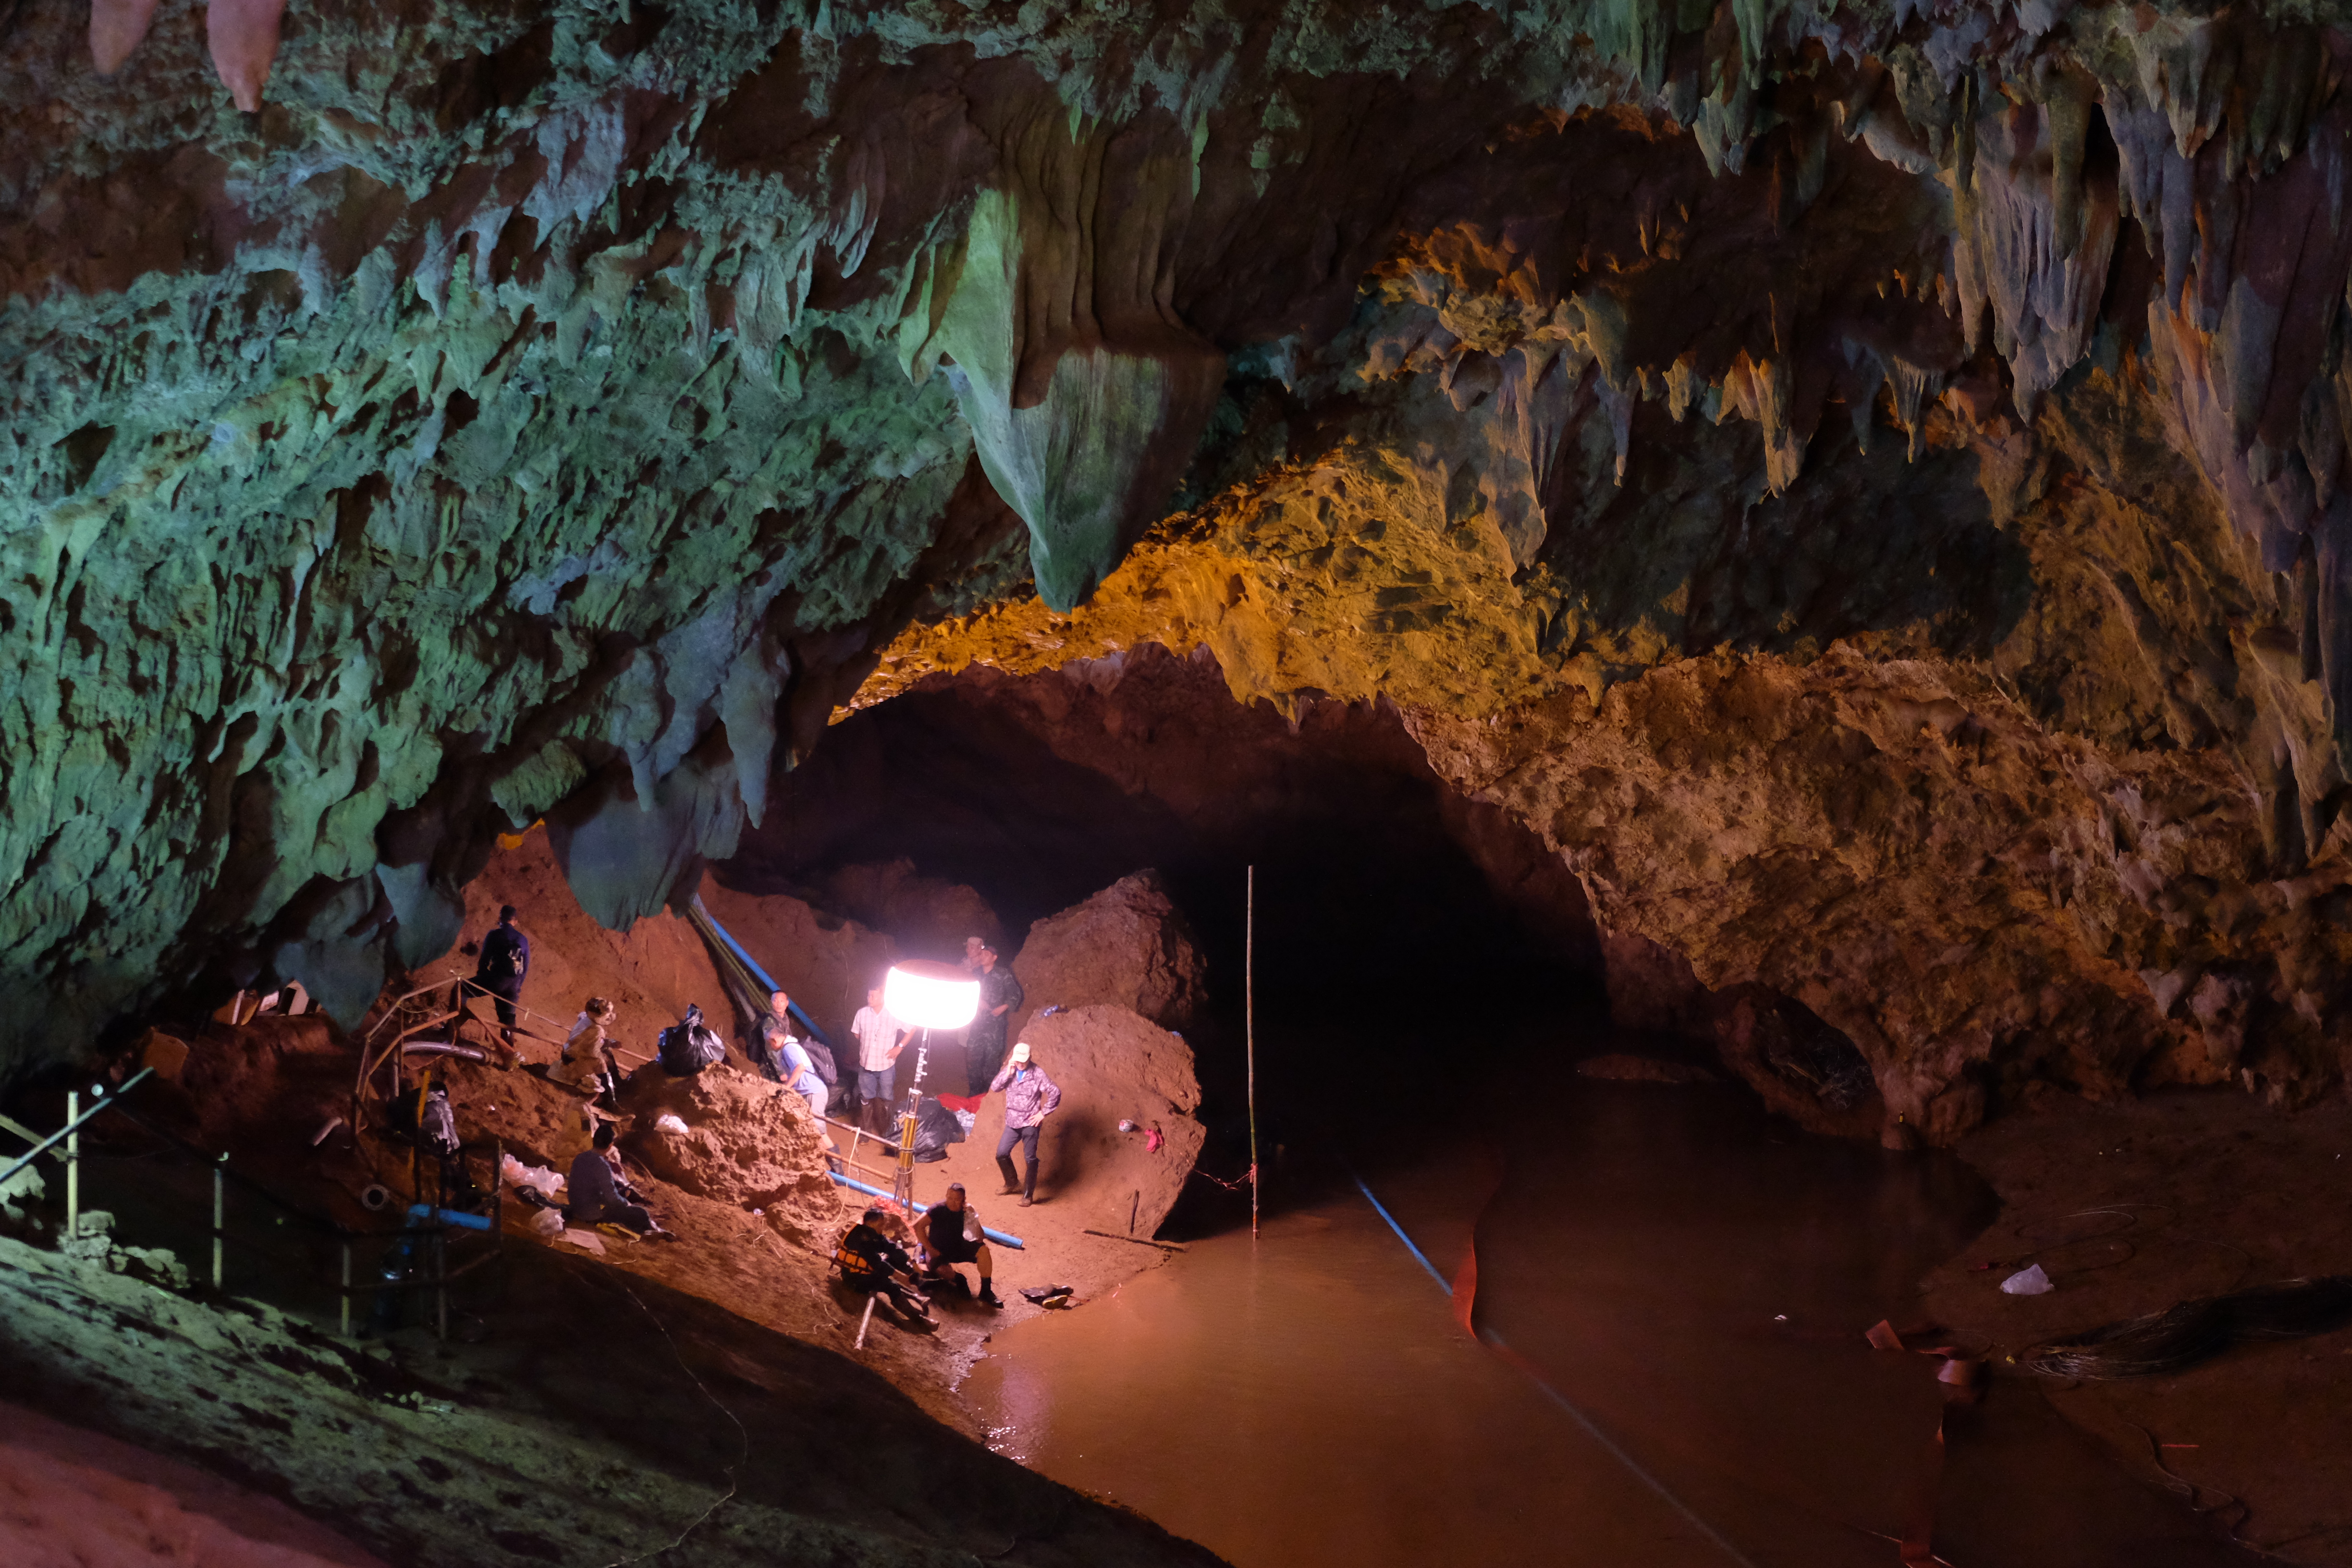 Rescuers install a water pump inside Tham Luang Nang Non cave on June 28, 2018 in Chiang Rai, Thailand. (Getty Images)